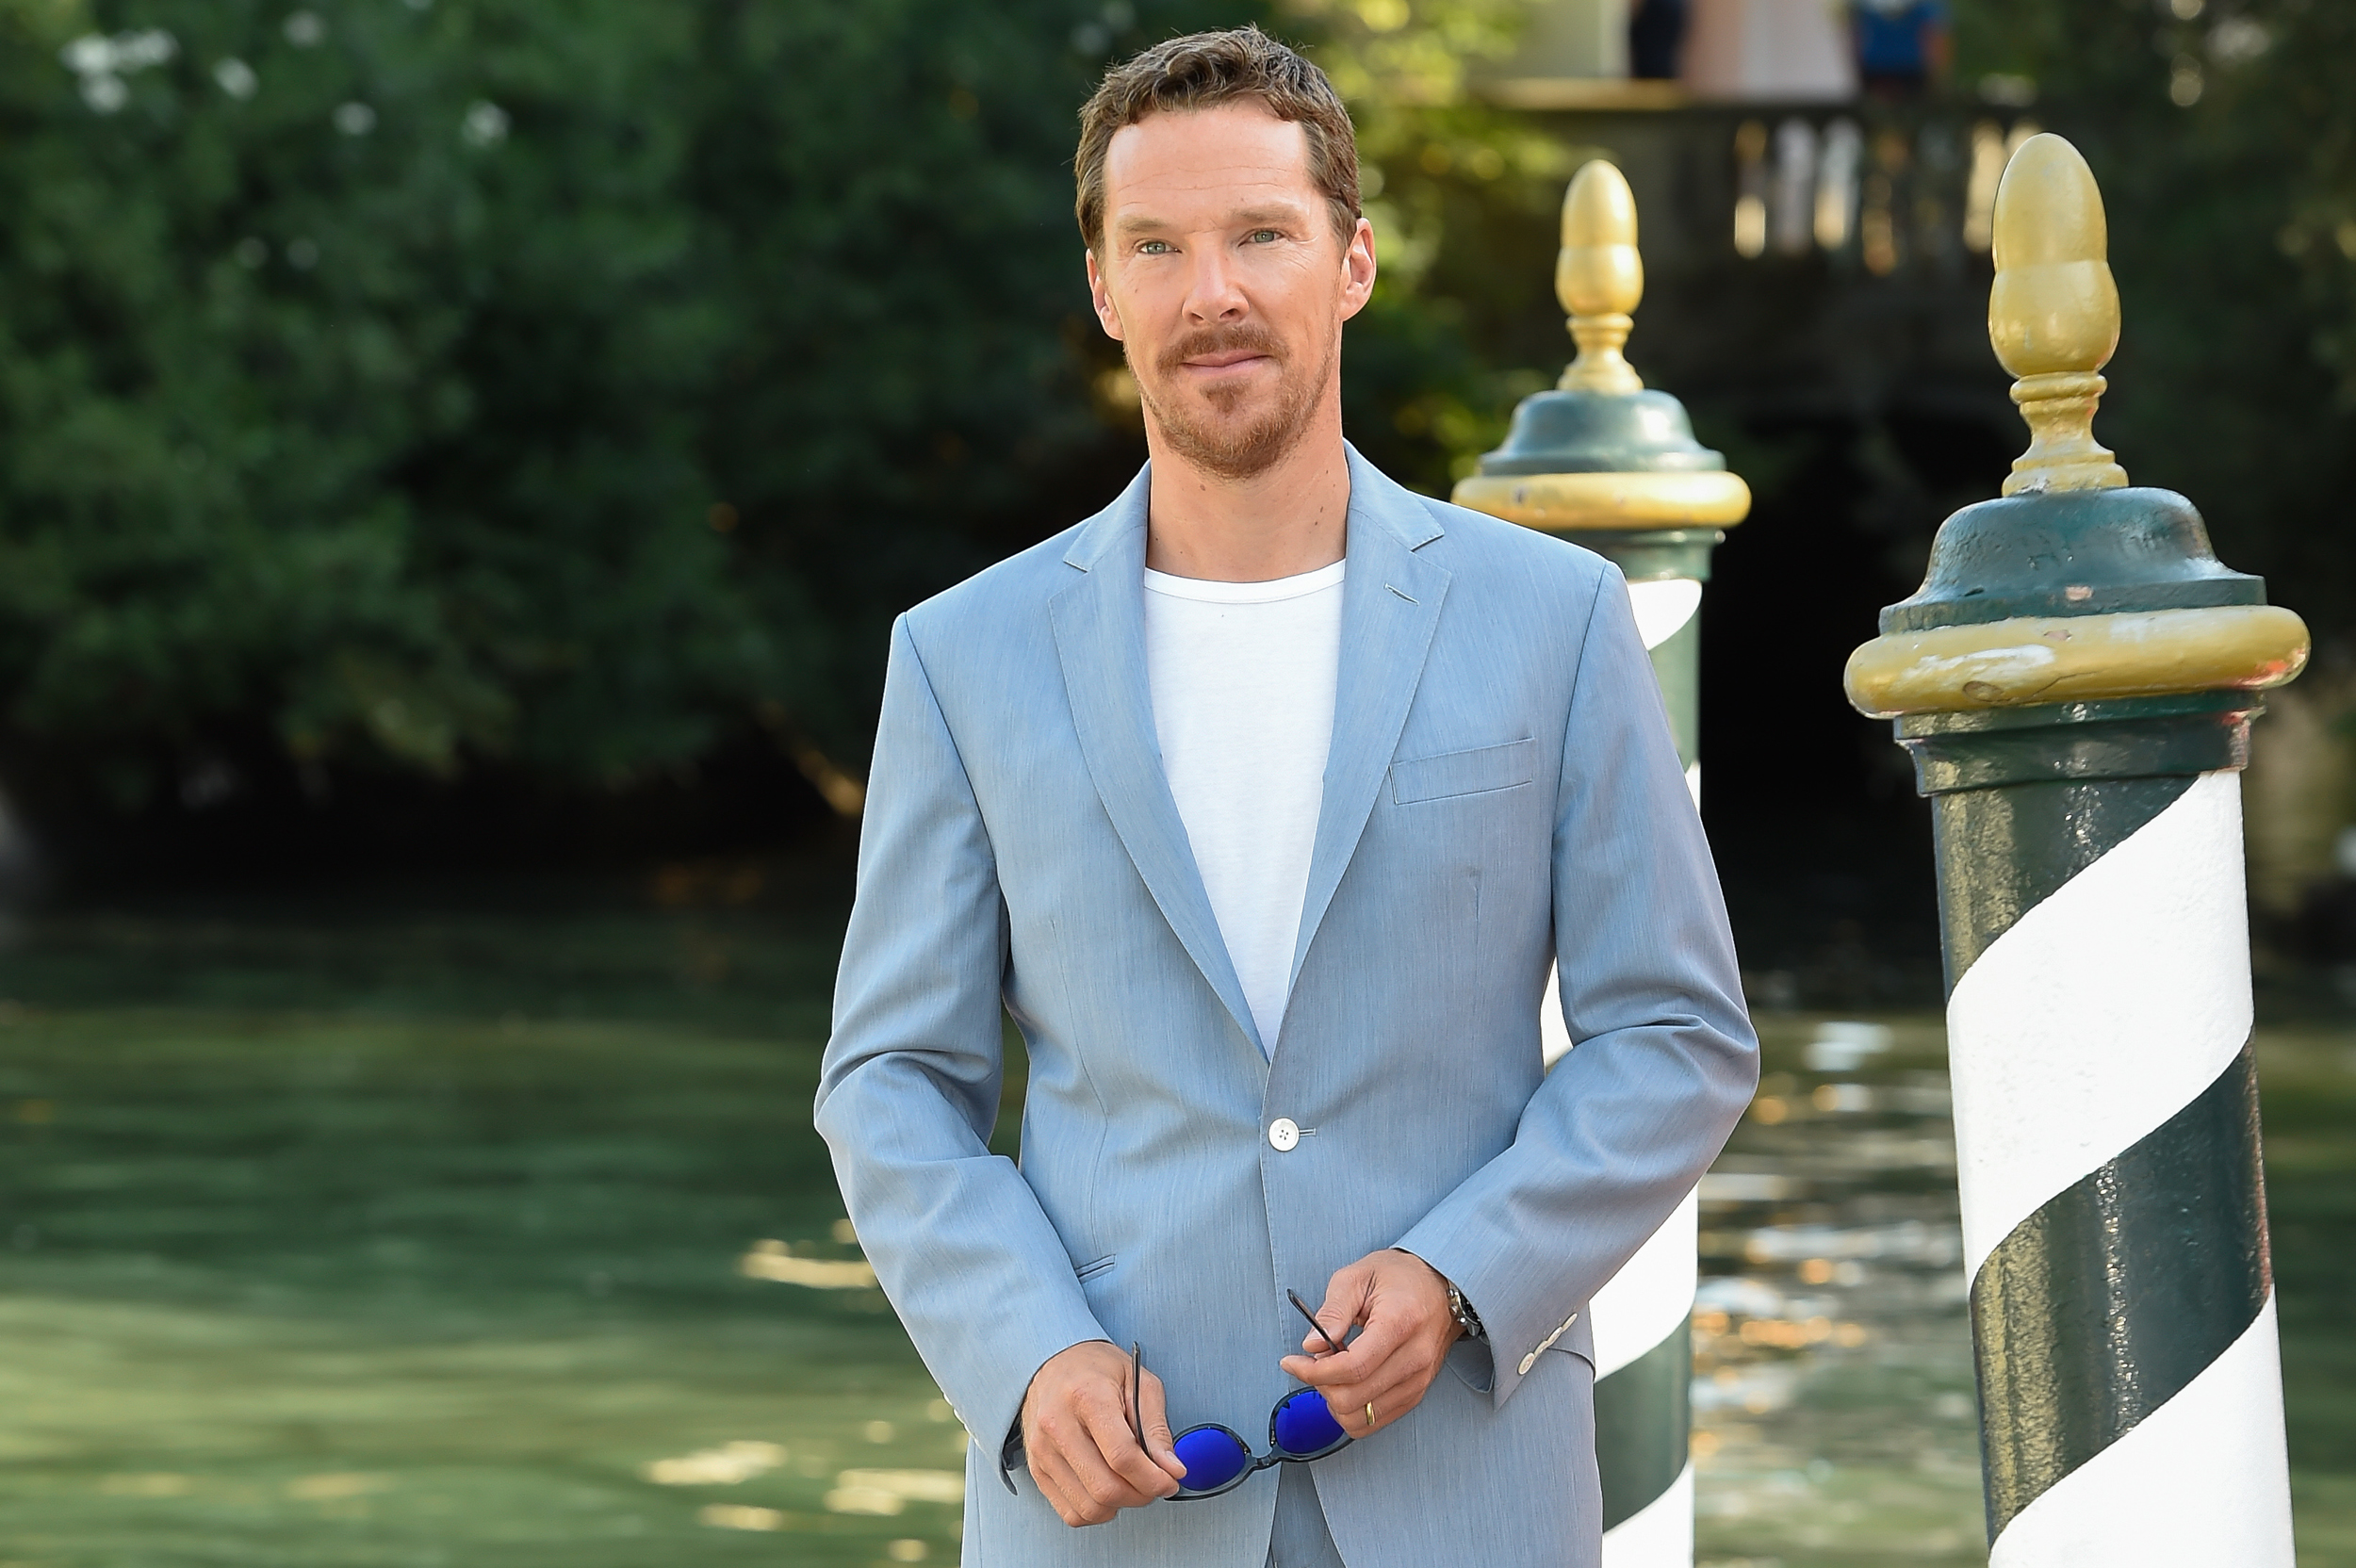 Benedict Cumberbatch on straight actors playing gay characters